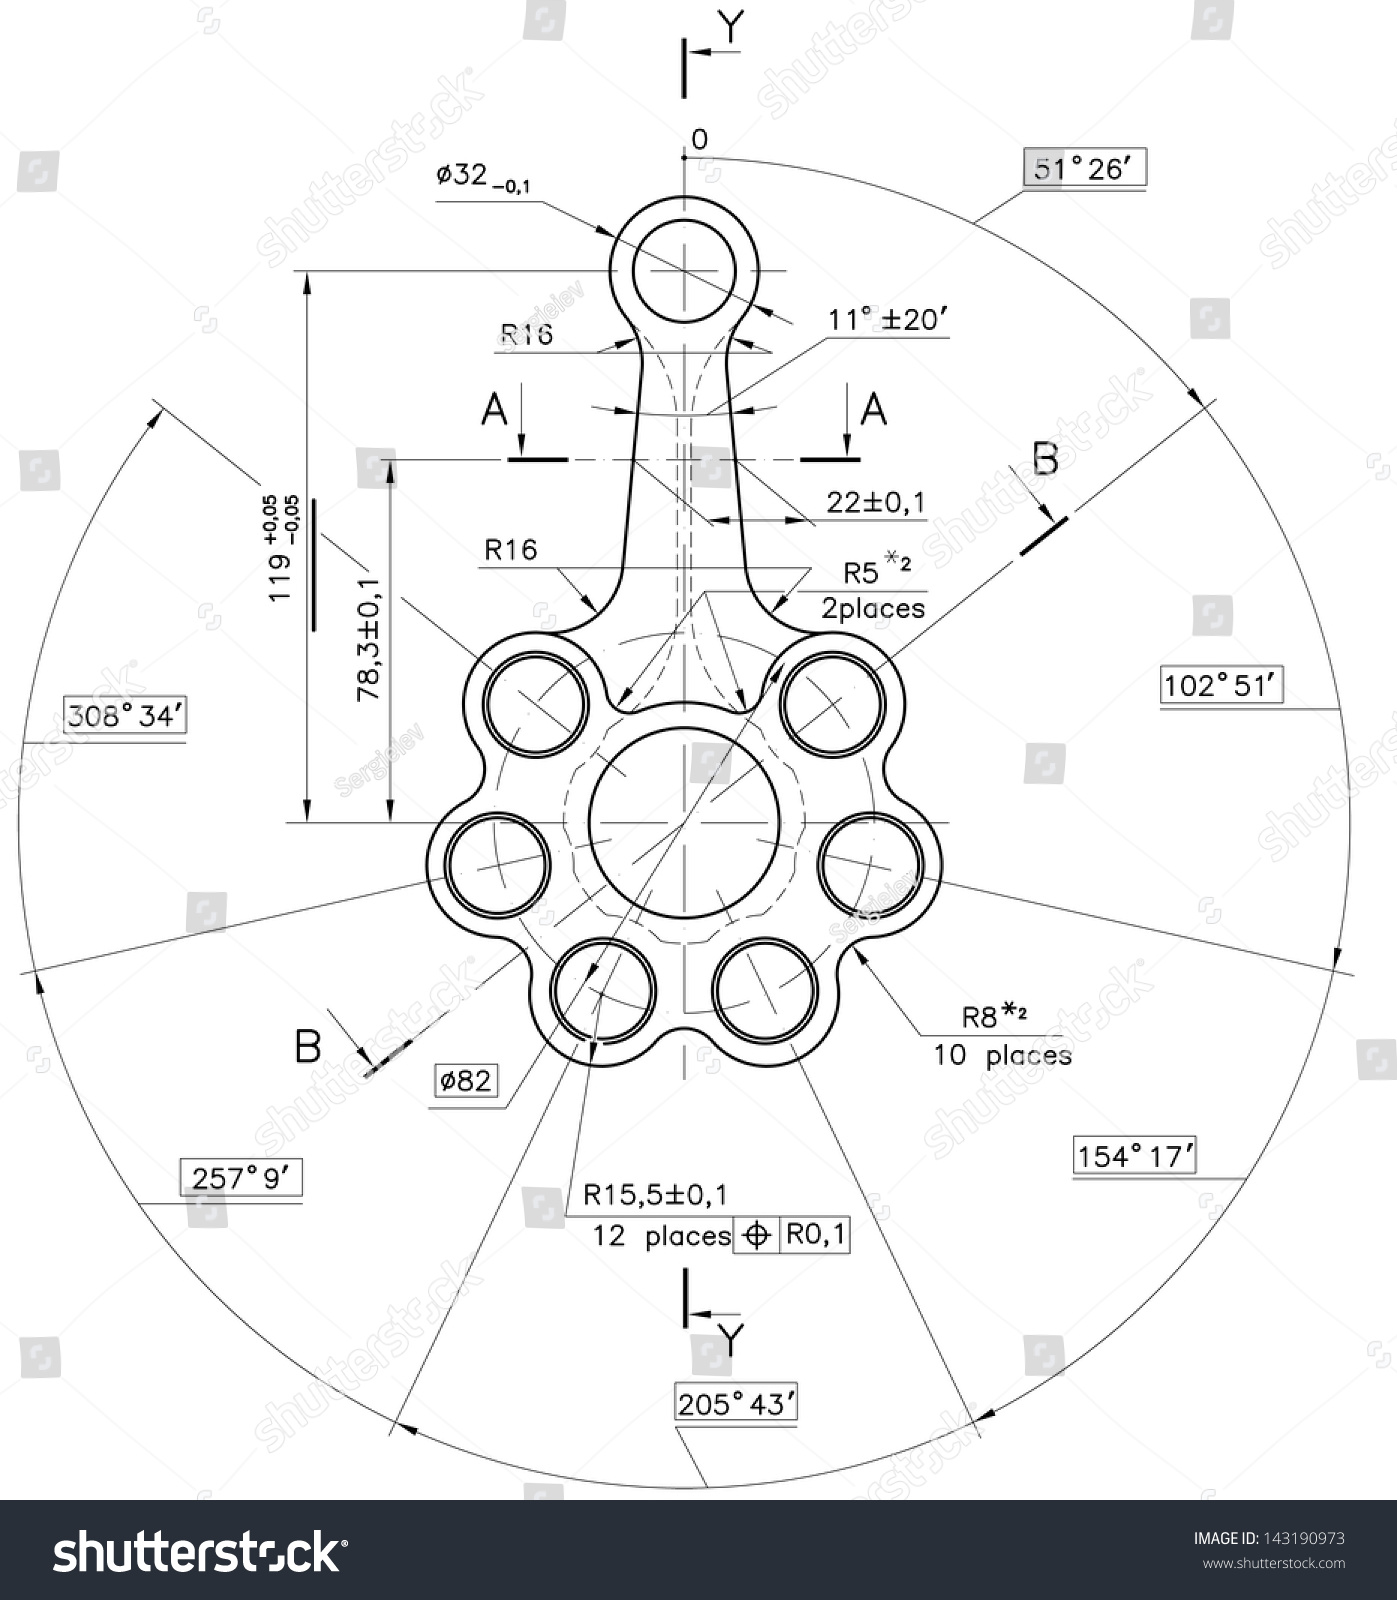 Design Technical Drawing Nonexistent Pistonrod Clipping